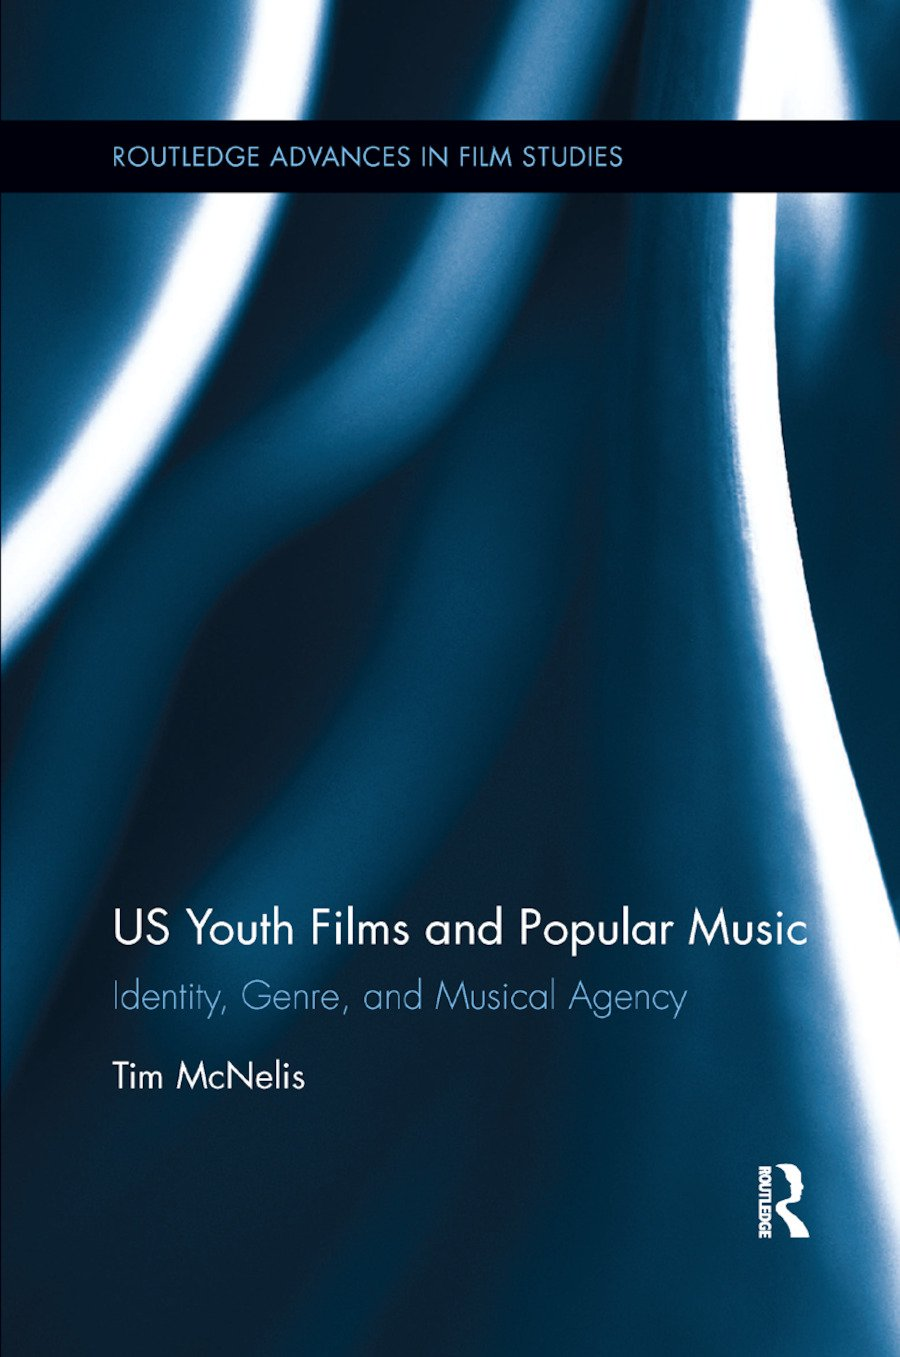 US Youth Films and Popular Music: Identity, Genre, and Musical Agency book cover